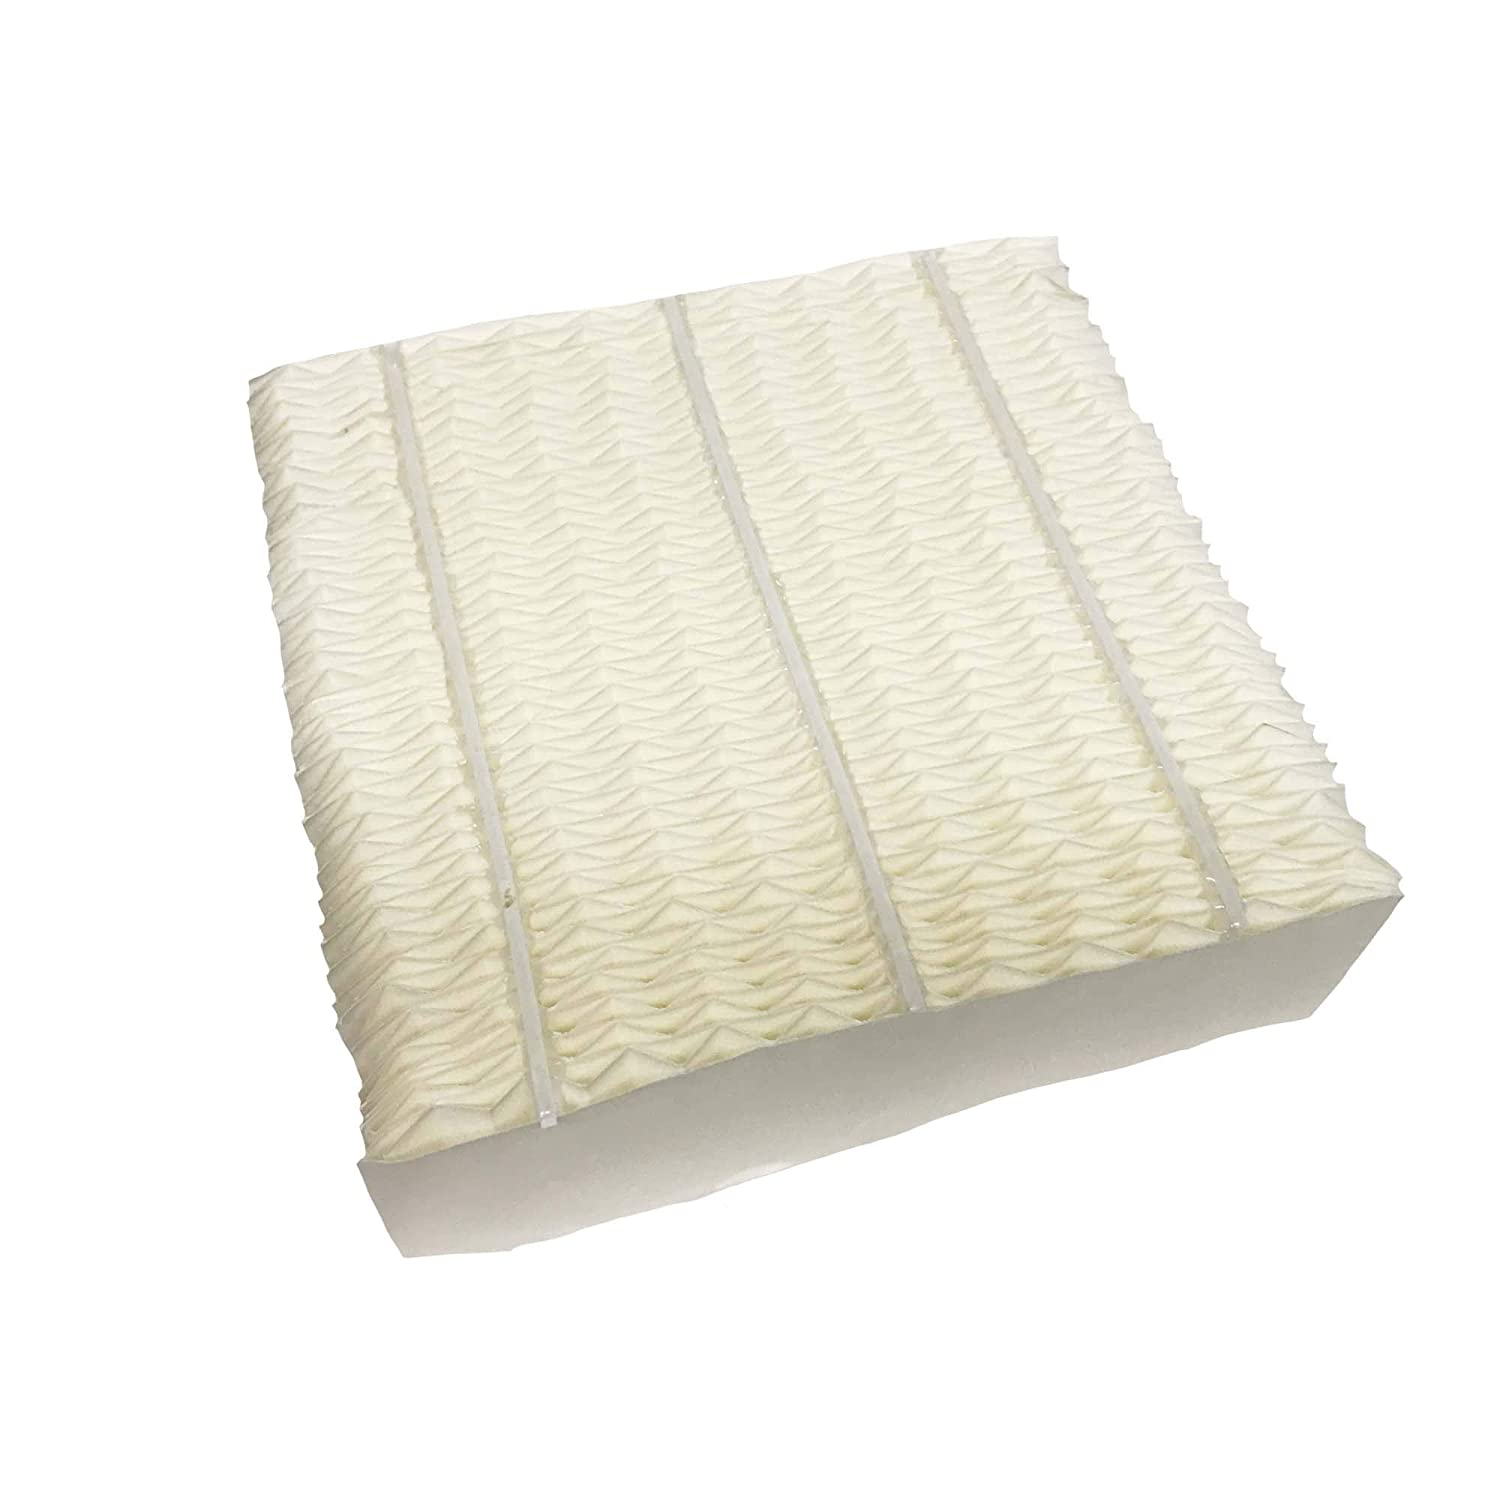 """Think Crucial Replacement for Aircare 1043 Paper Wick Humidifier Filter Fits Spacesaver 800, 8000 Series Console, 10.8"""" x 4.2"""" x 12.5"""""""